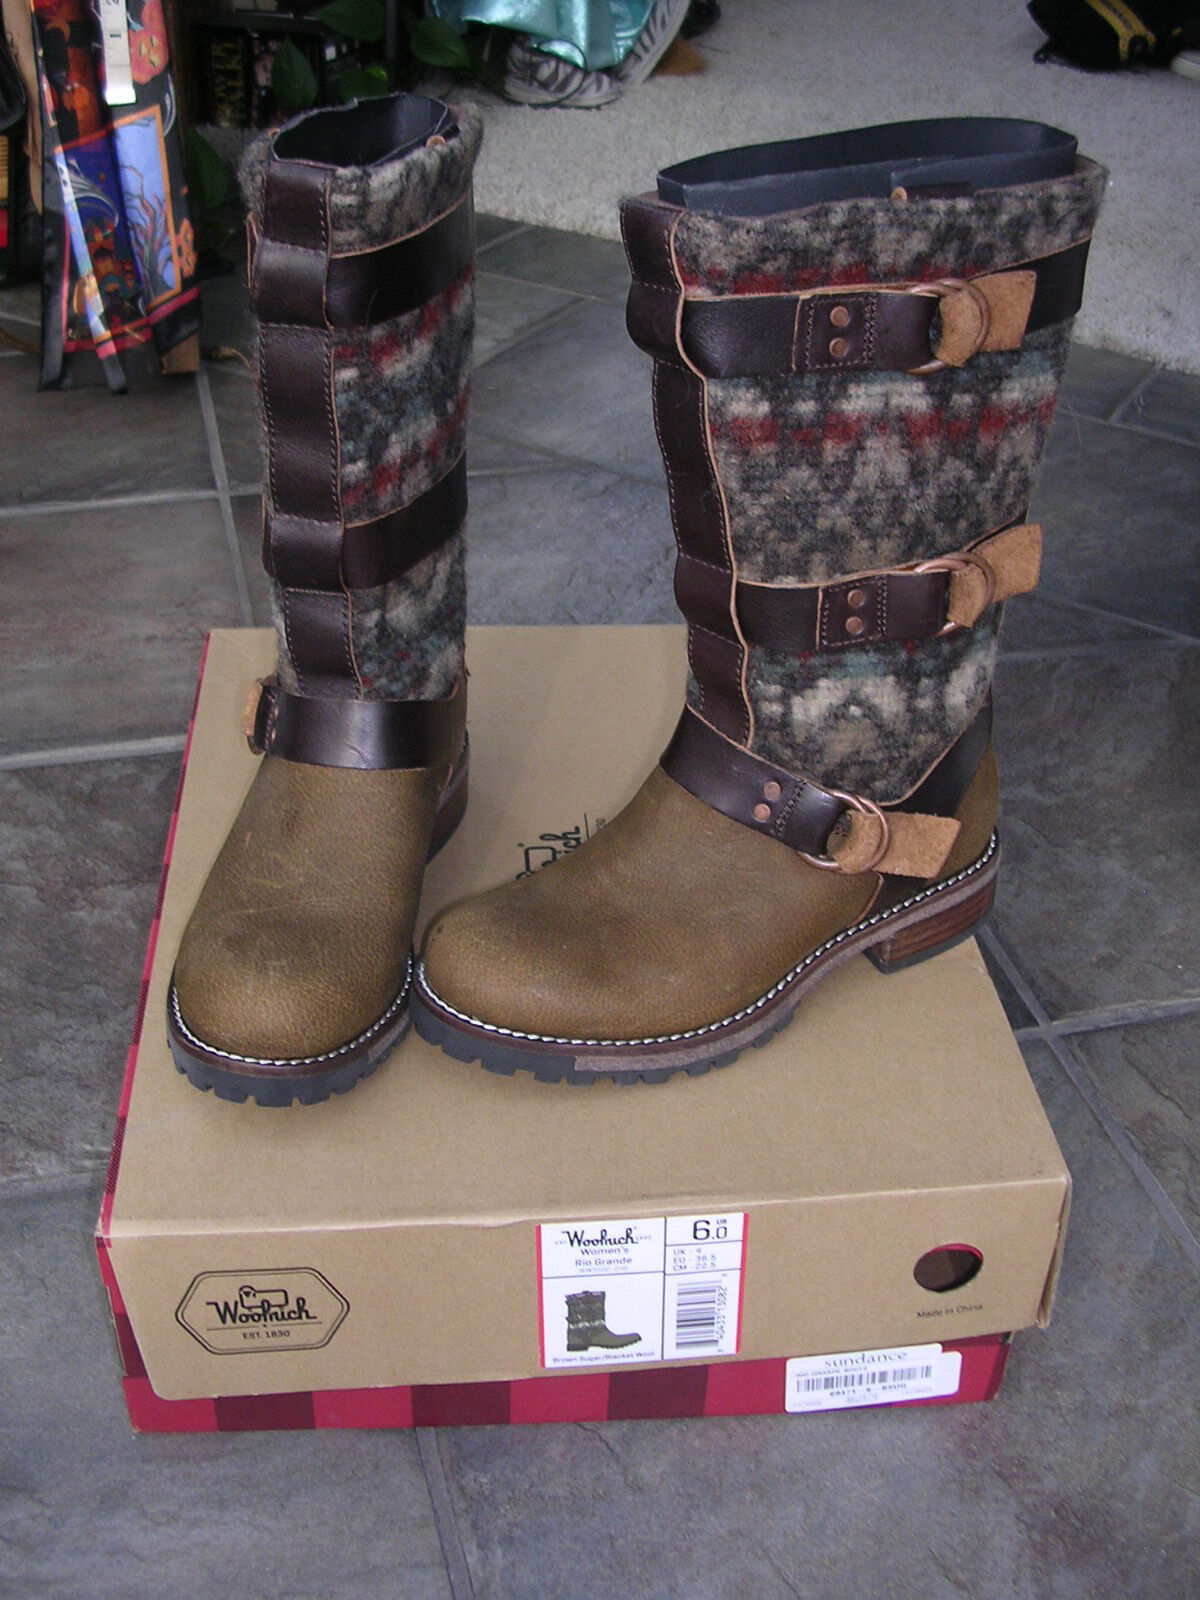 AWESOME SUNDANCE  298 WOOLRICH RIO GRANDE LEATHER WOOL BLANKET BUCKLE BOOTS